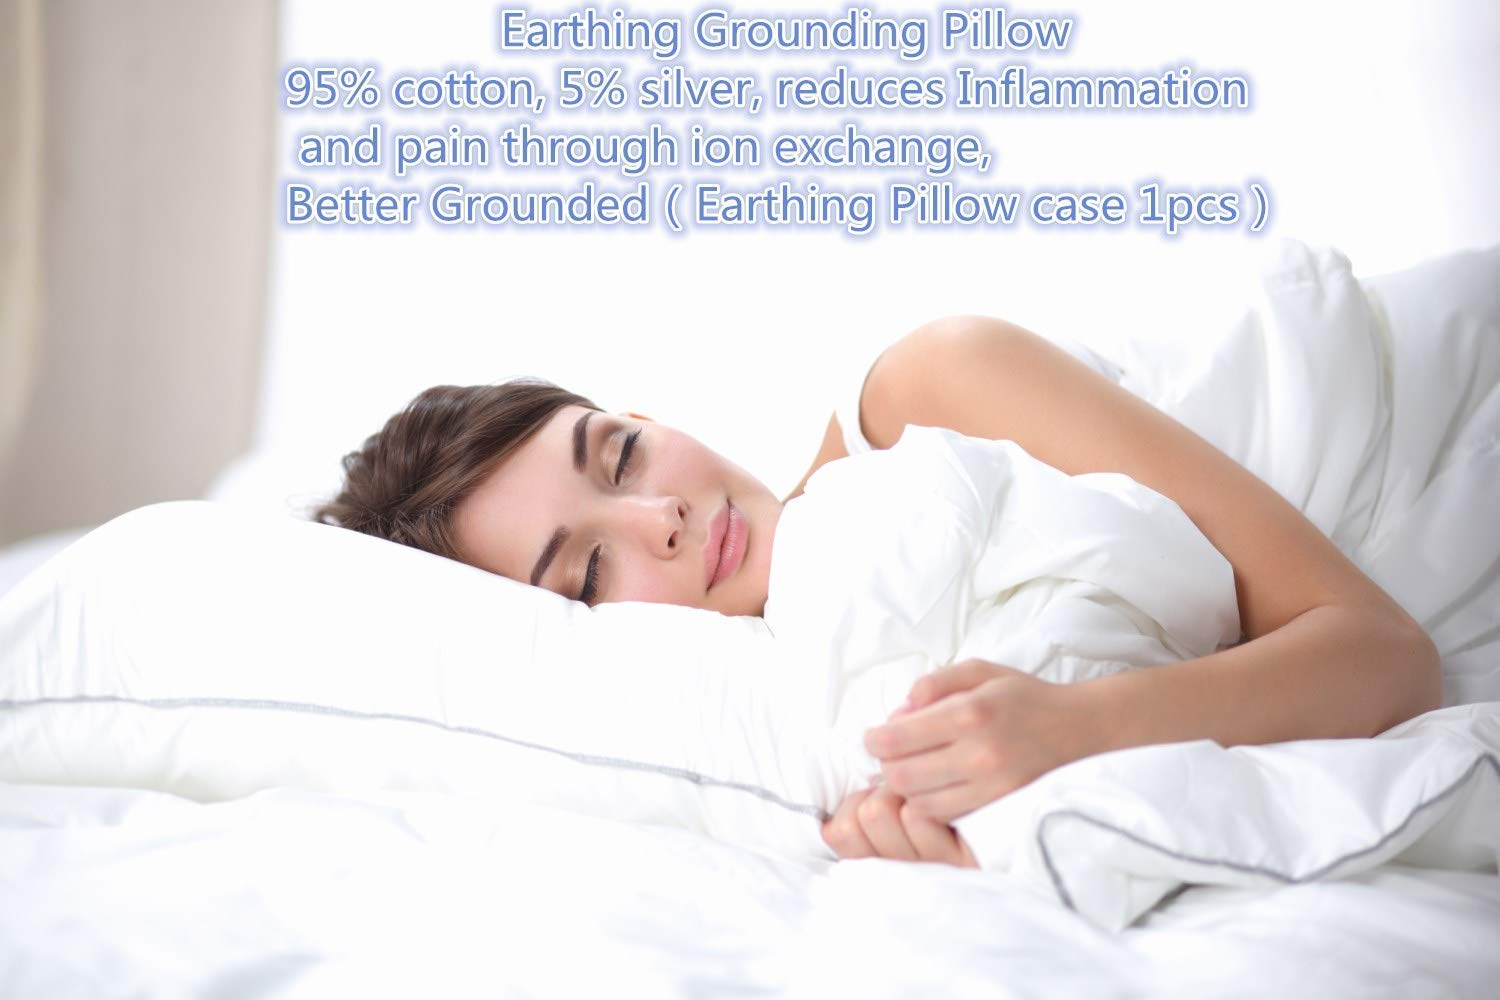 Safe for Kids and Adults Earthing Pillowcase fits Full Queen and King Size Beds pillow case 1 pc-01 A New Lifestyle Recommend Earthing Pillow case with Grounding Connection Cord Conductive Grounding Mat for Better Sleep/Natural Wellness